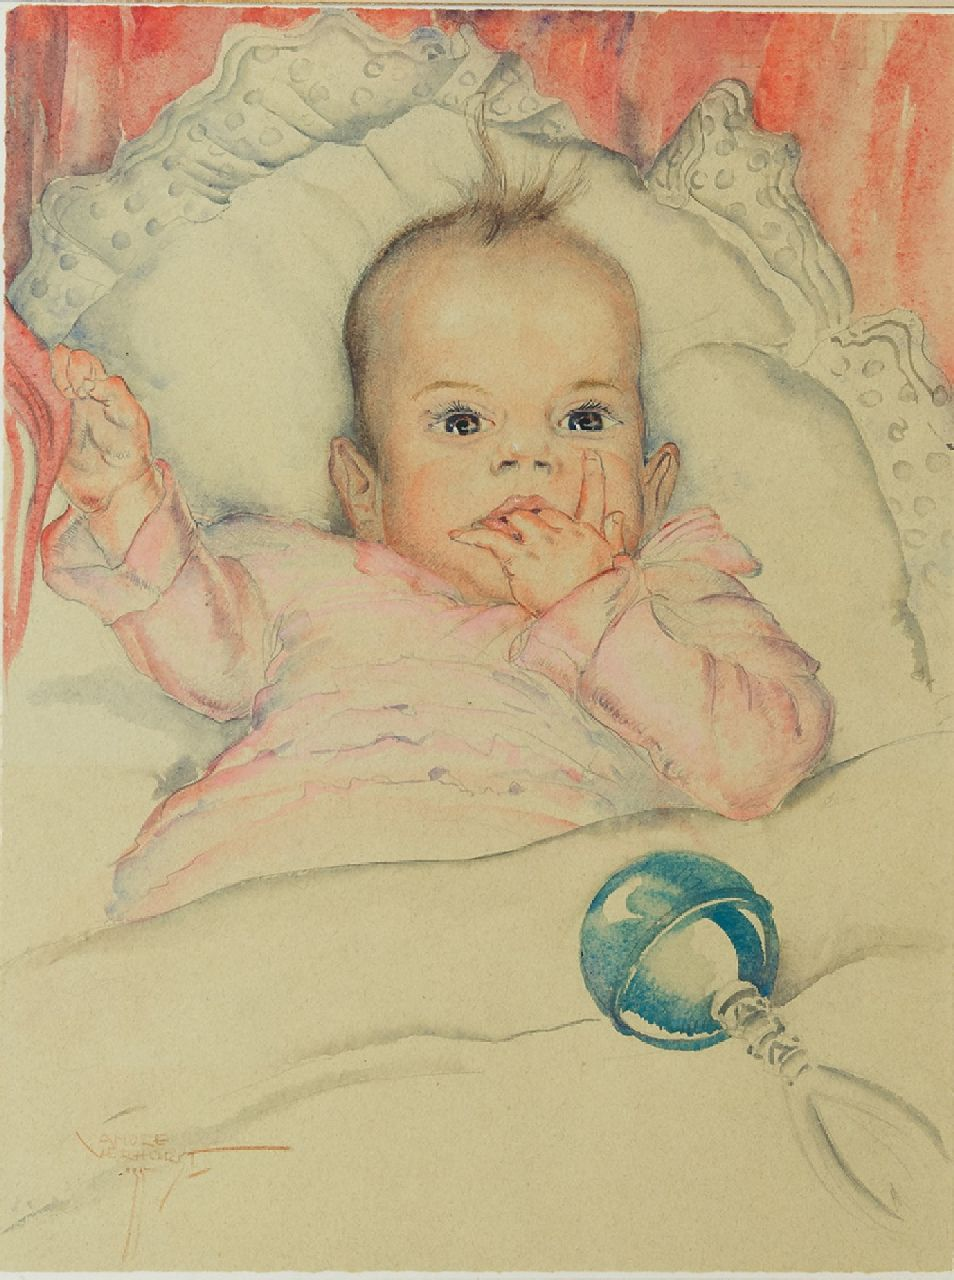 André Verhorst | A baby's portrait of Emmie Reijnders, pencil and watercolour on paper, 44.5 x 33.5 cm, signed l.l. and dated '35